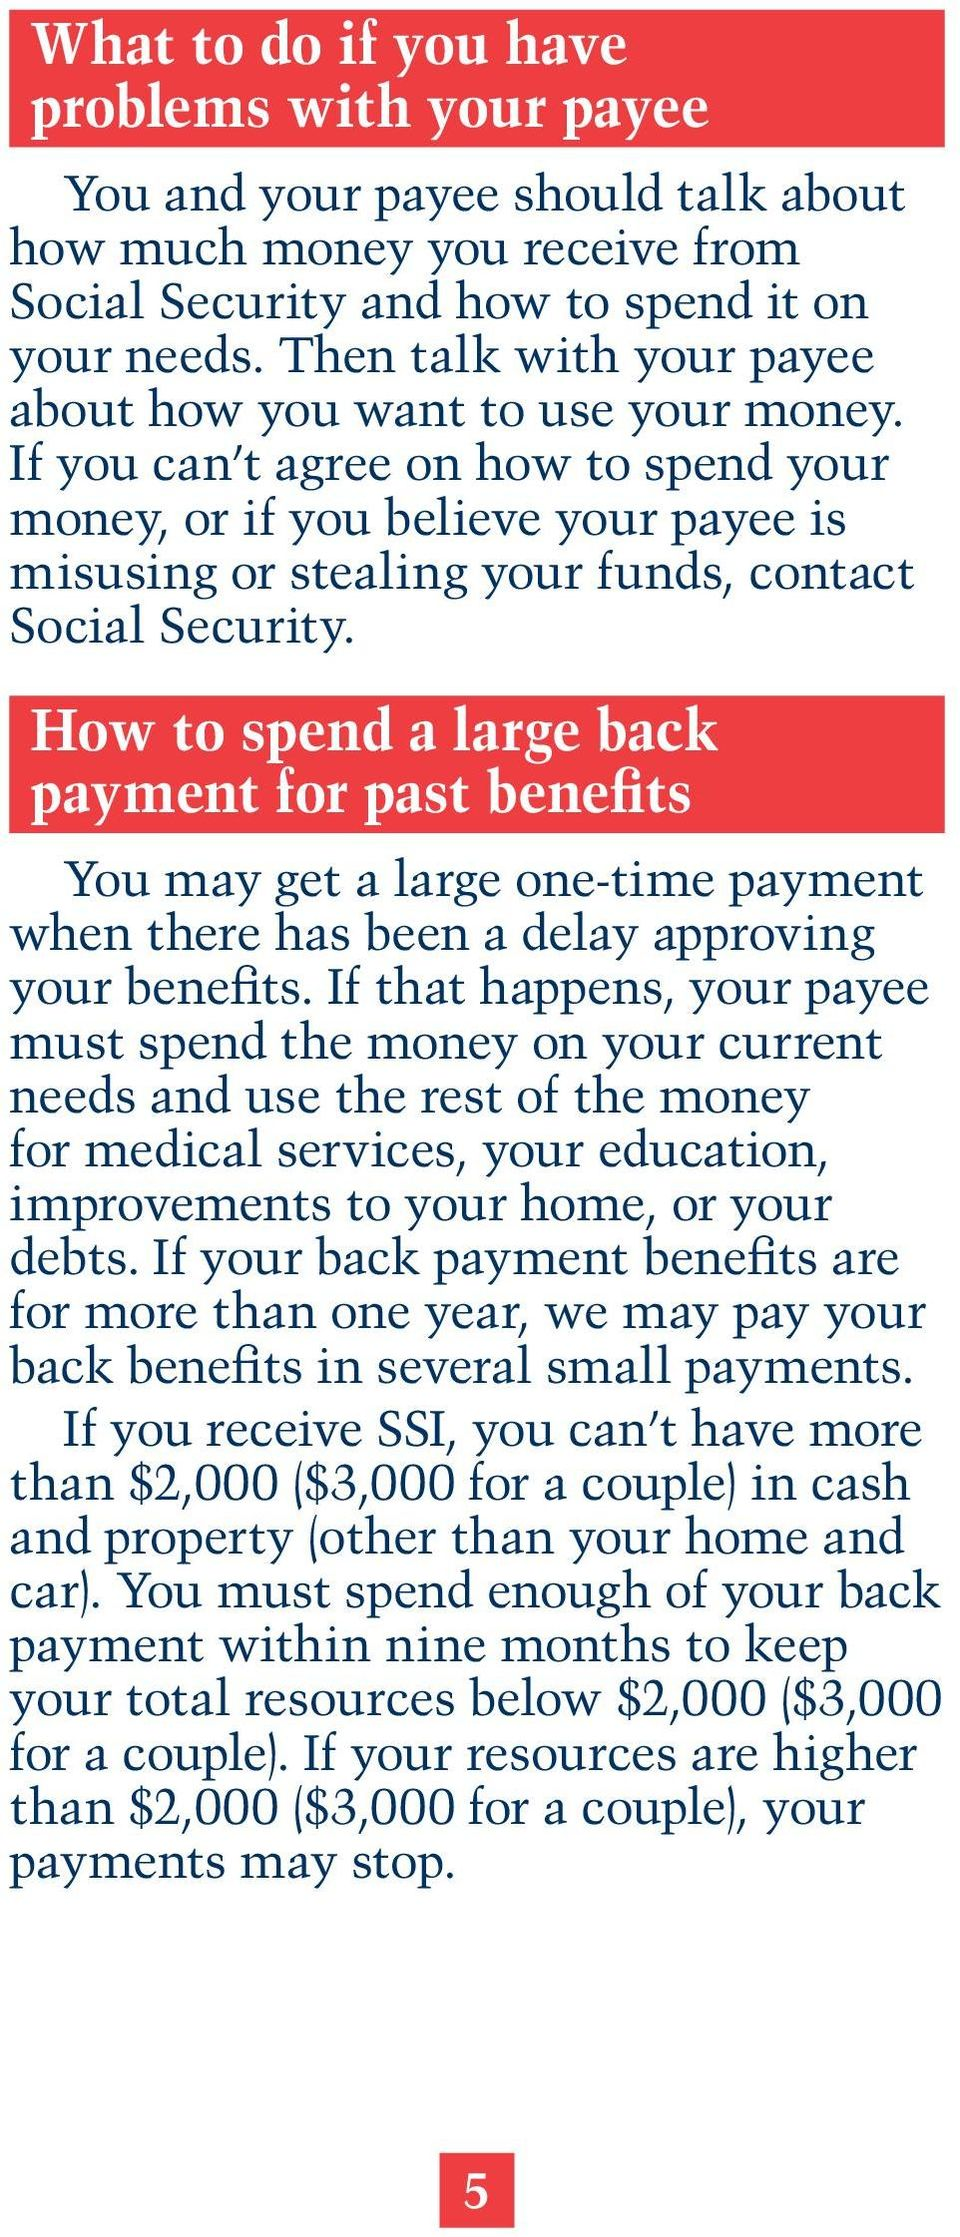 How to spend a large back payment for past benefits You may get a large one-time payment when there has been a delay approving your benefits.